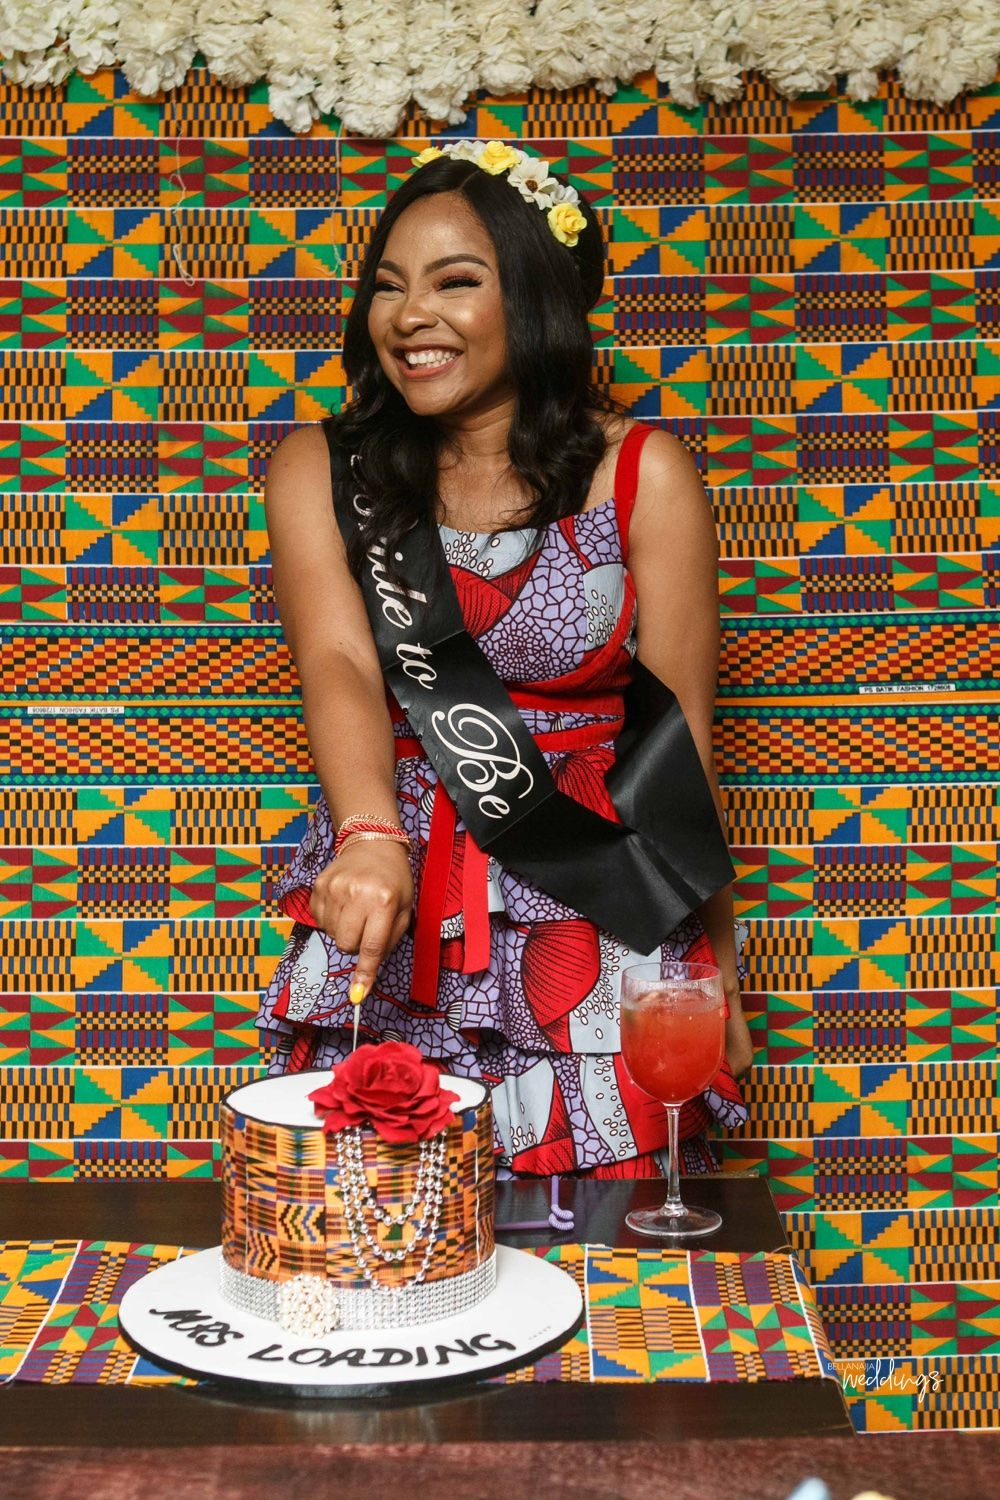 Linda Ejiofor S Safari Themed Surprise Bridal Shower Will Swing You Into A Beautiful Day Shower Dress For Bride Bridal Shower Inspiration Bella Naija Weddings